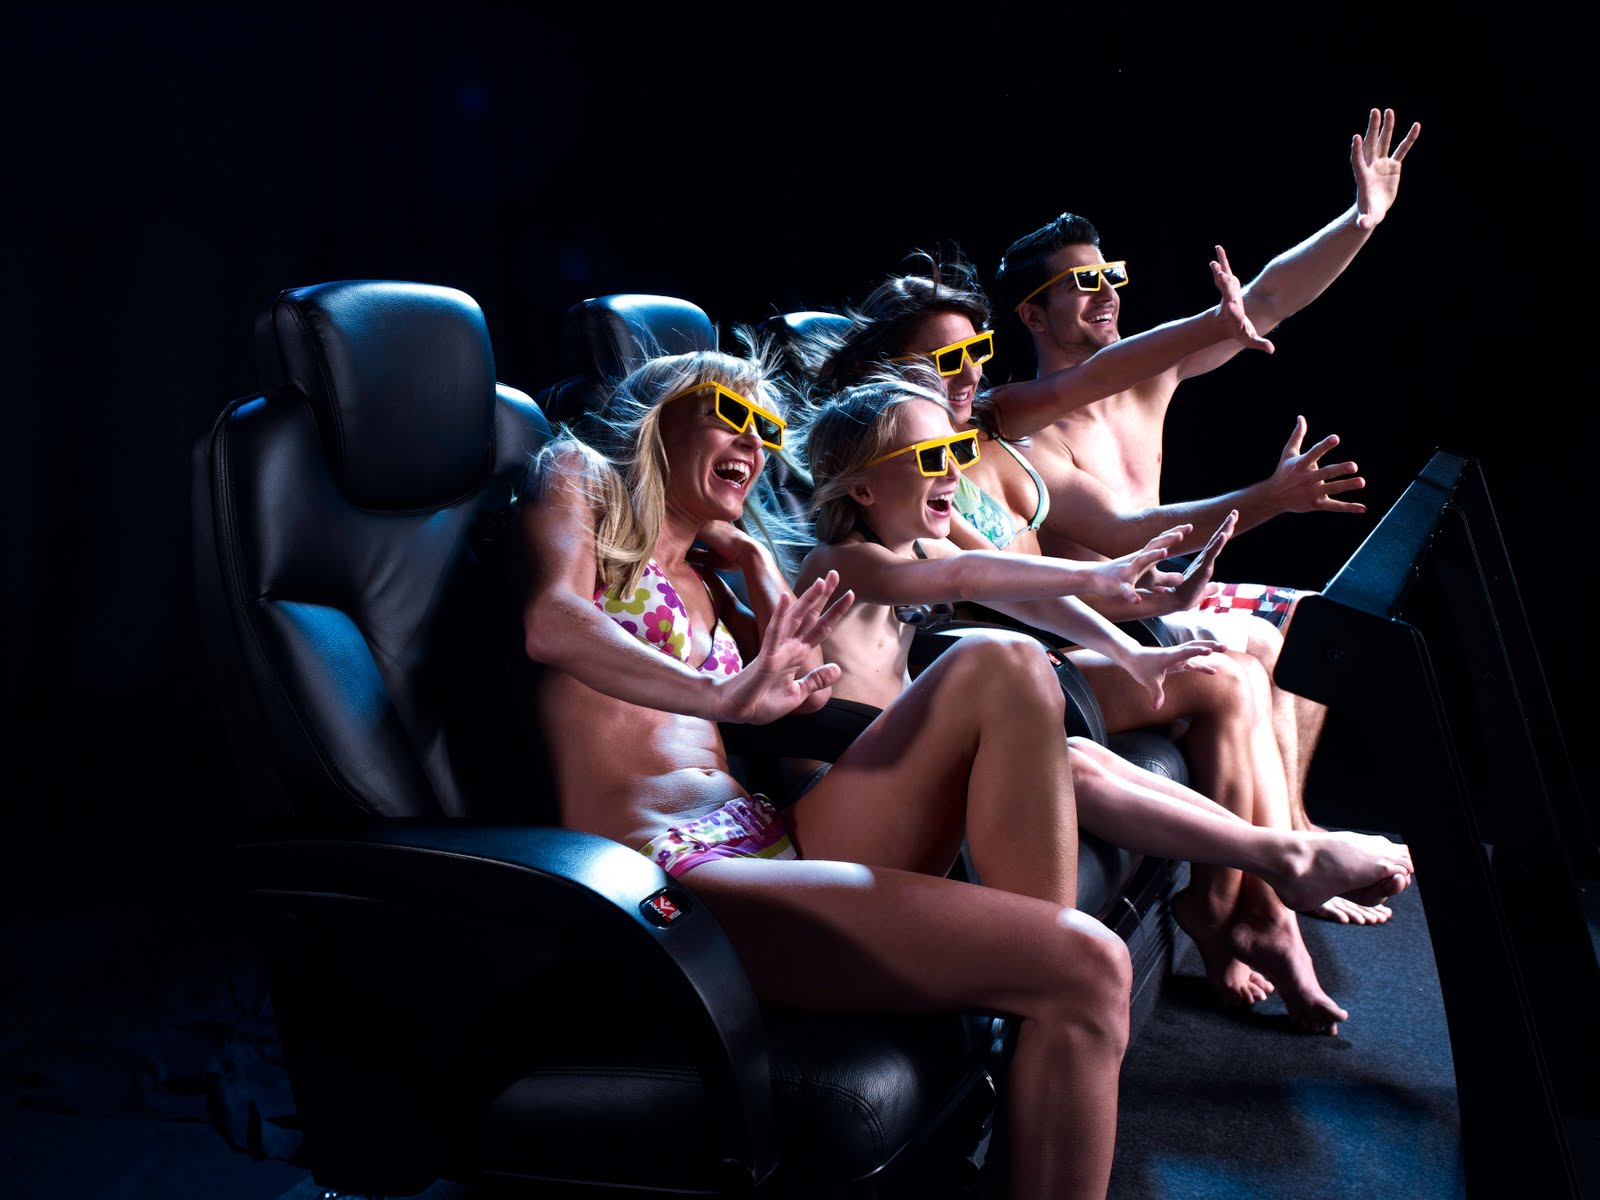 Mauritius attractions: 4D cinema